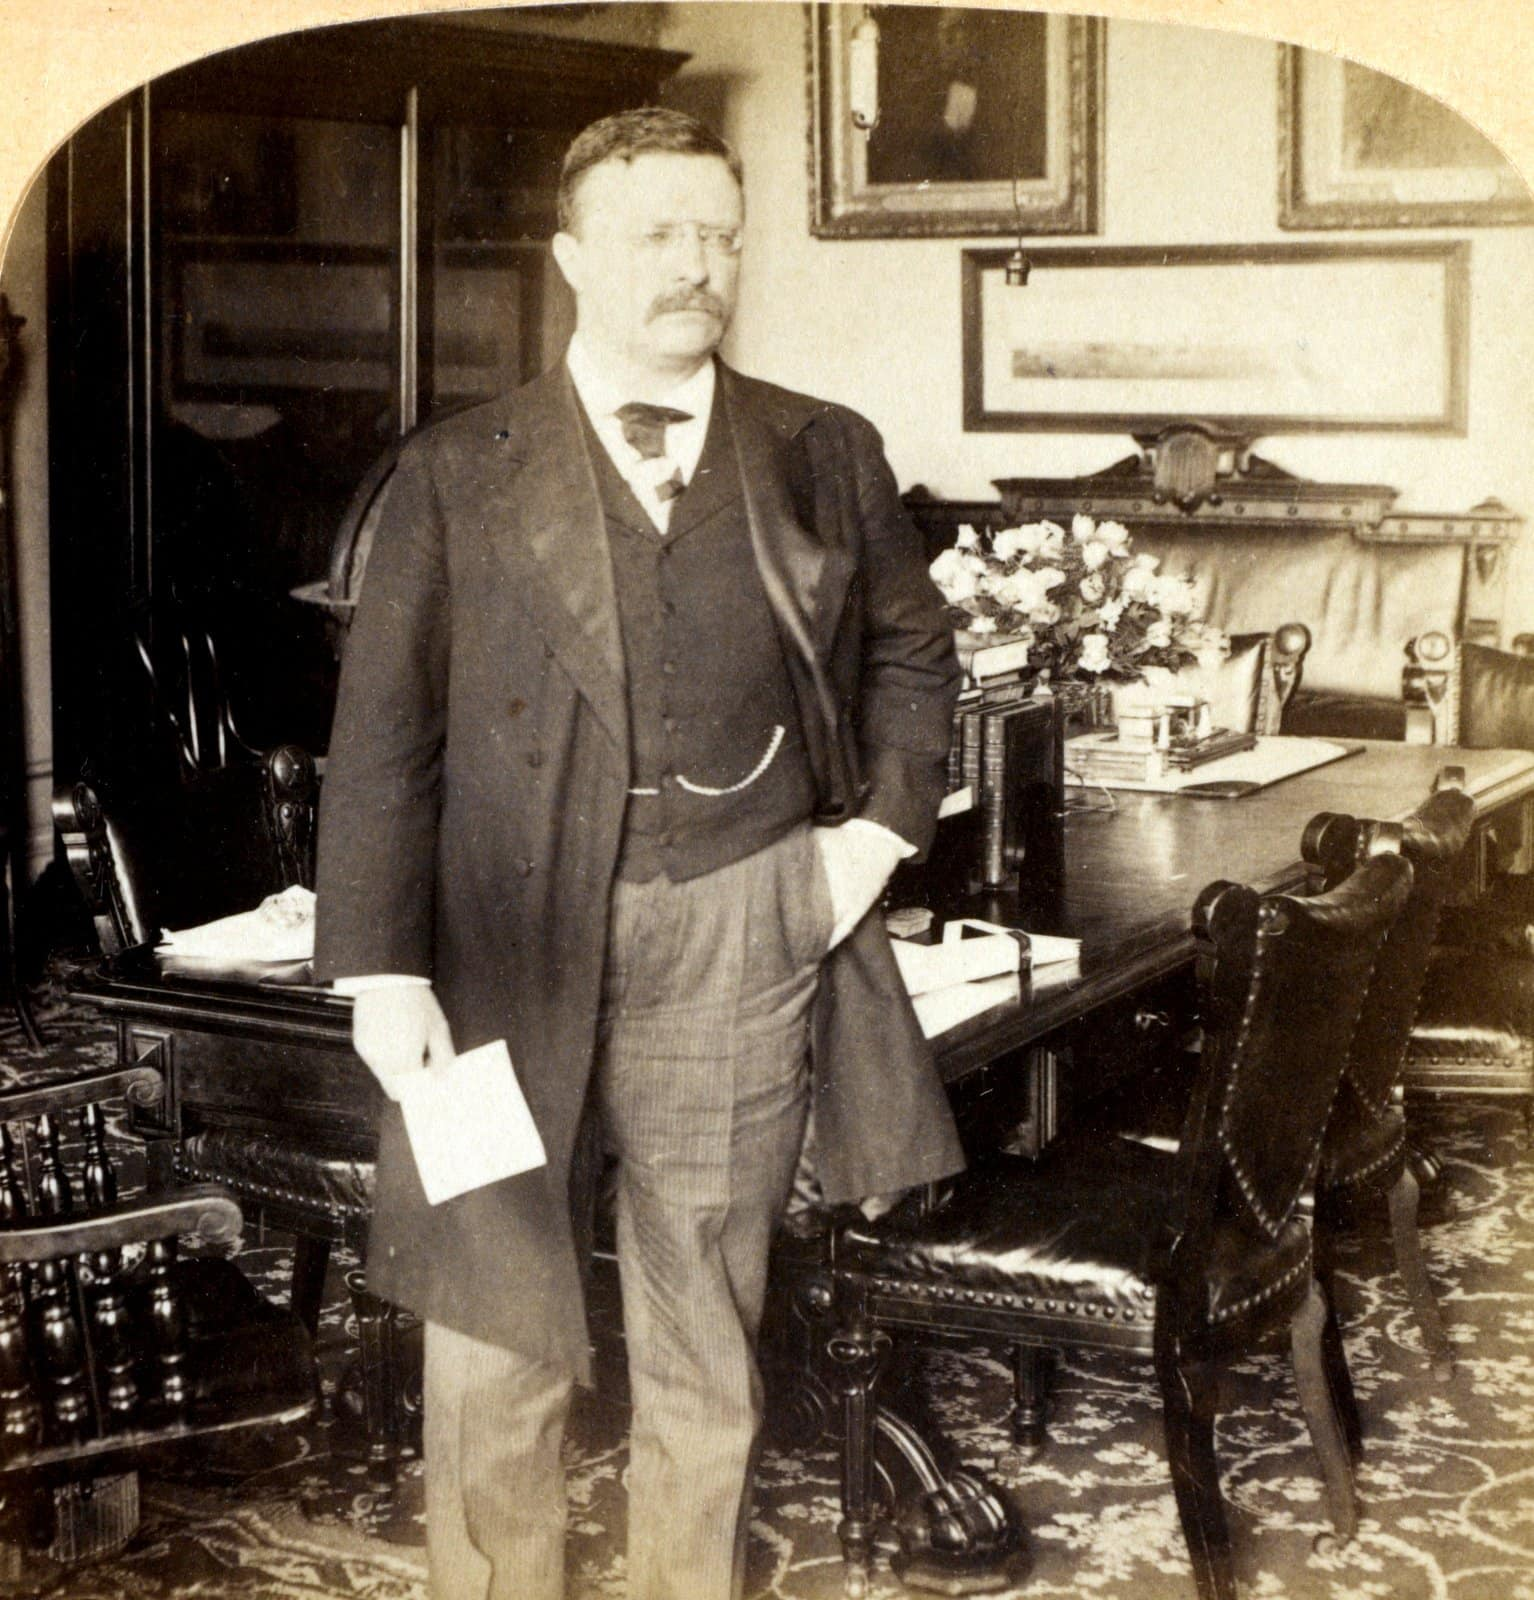 President Theodore Roosevelt in his office-the Cabinet Room, White House (1902)